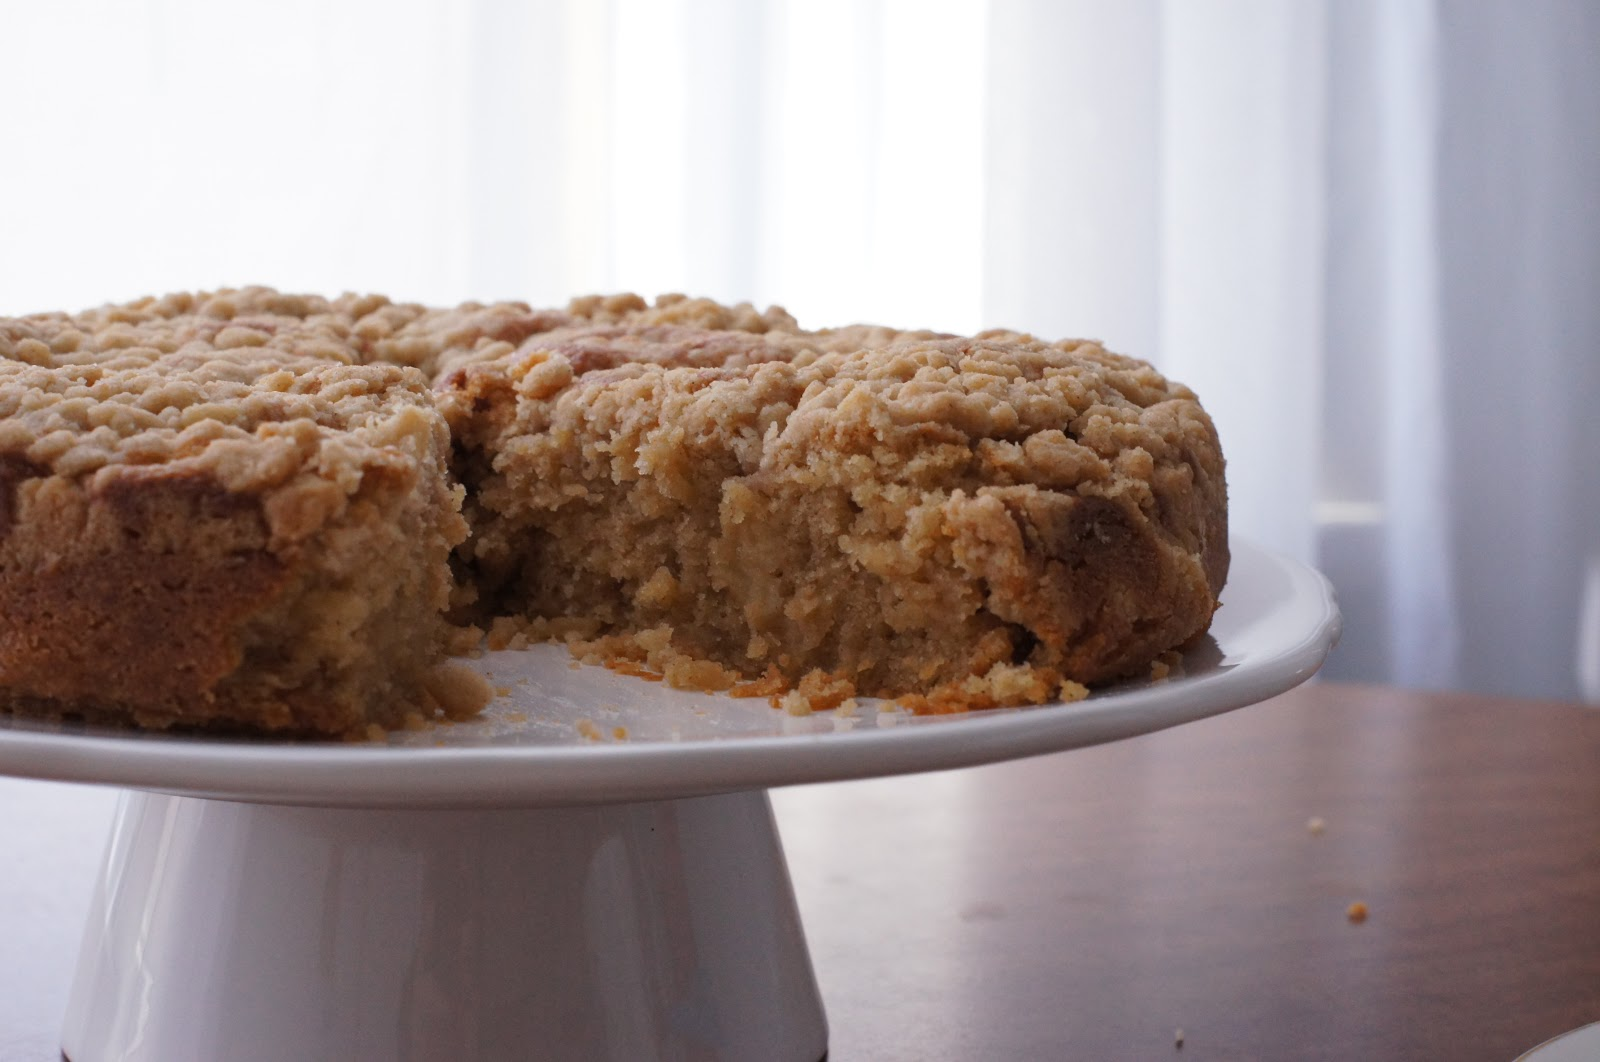 ... Spiced AppleCoffee Cake with Spiced Streusel (makes one 9-inch cake